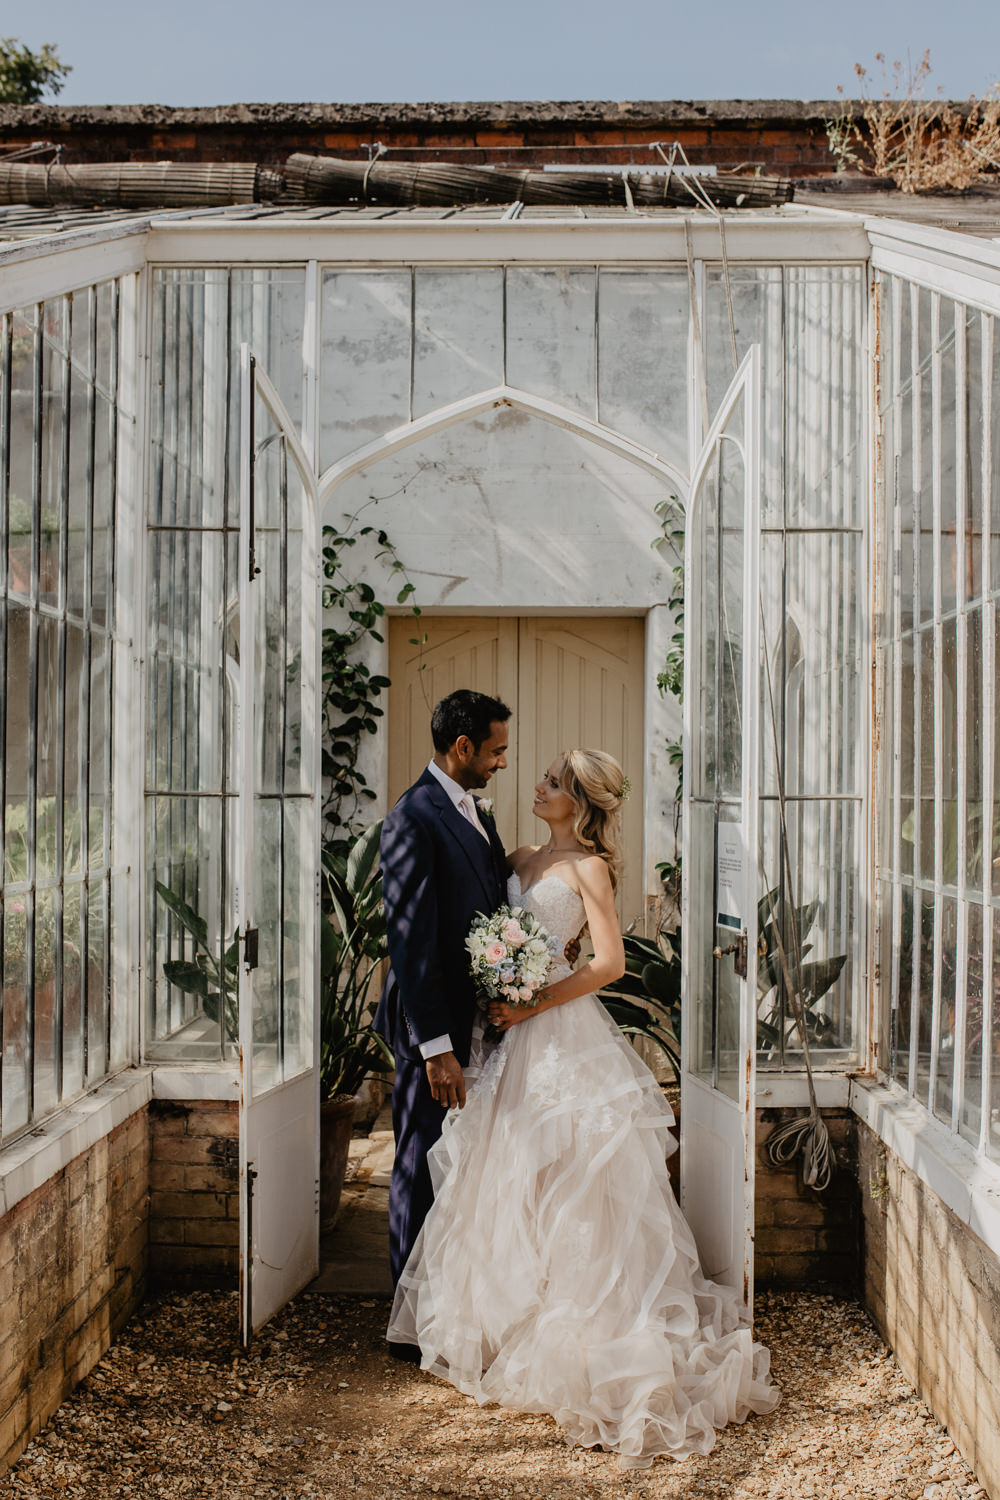 Osborne House Isle of Wight Natural Classic Bride Groom Stella York Dress Pink White Bouquet | Timeless Royal Inspired Seaside Wedding Holly Cade Photography